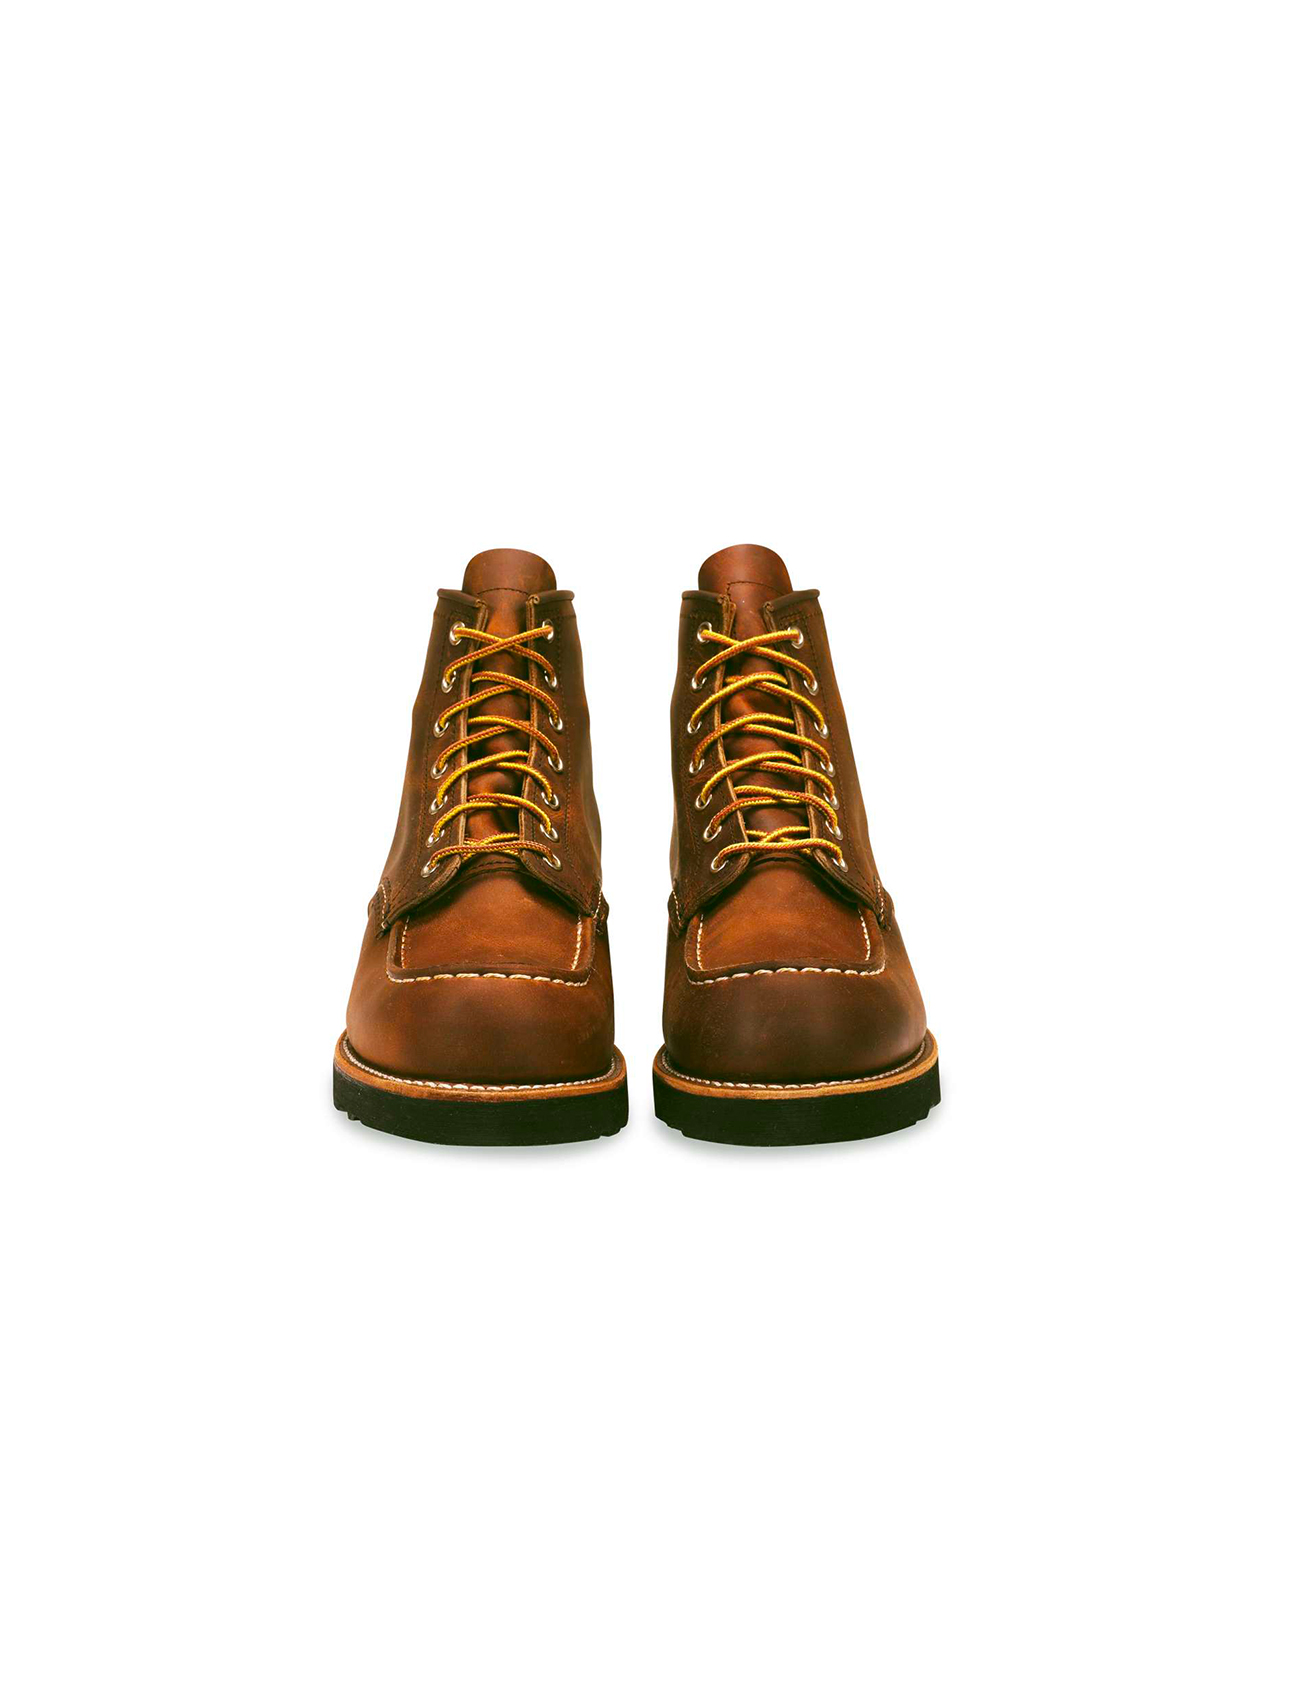 Red Wing 8886 Moc Toe | Wooden Store